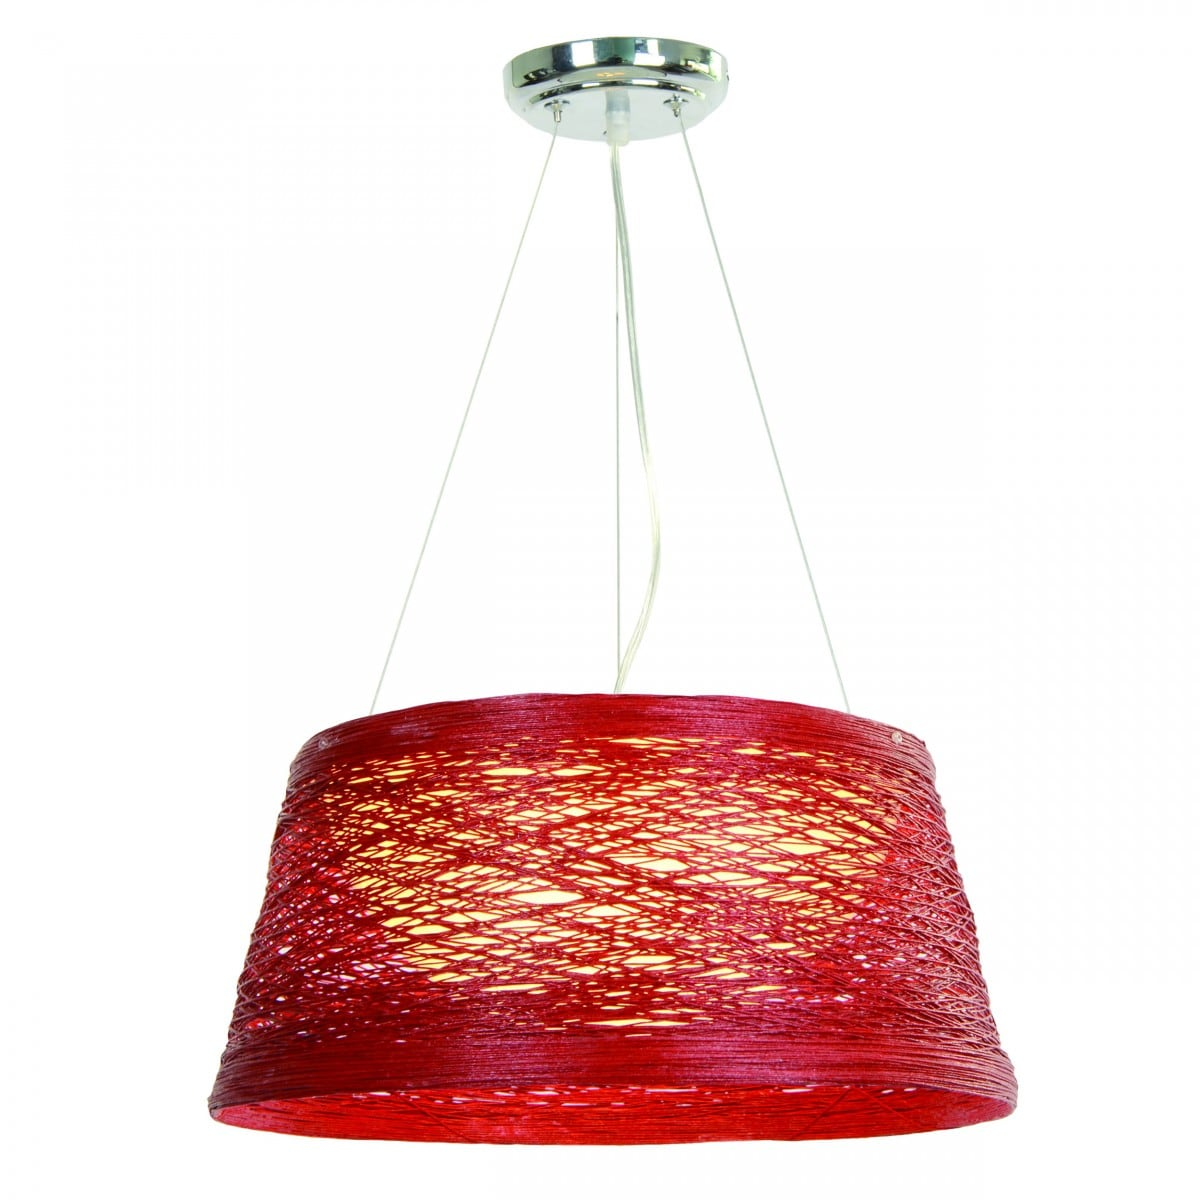 Fragola 1 hanging red